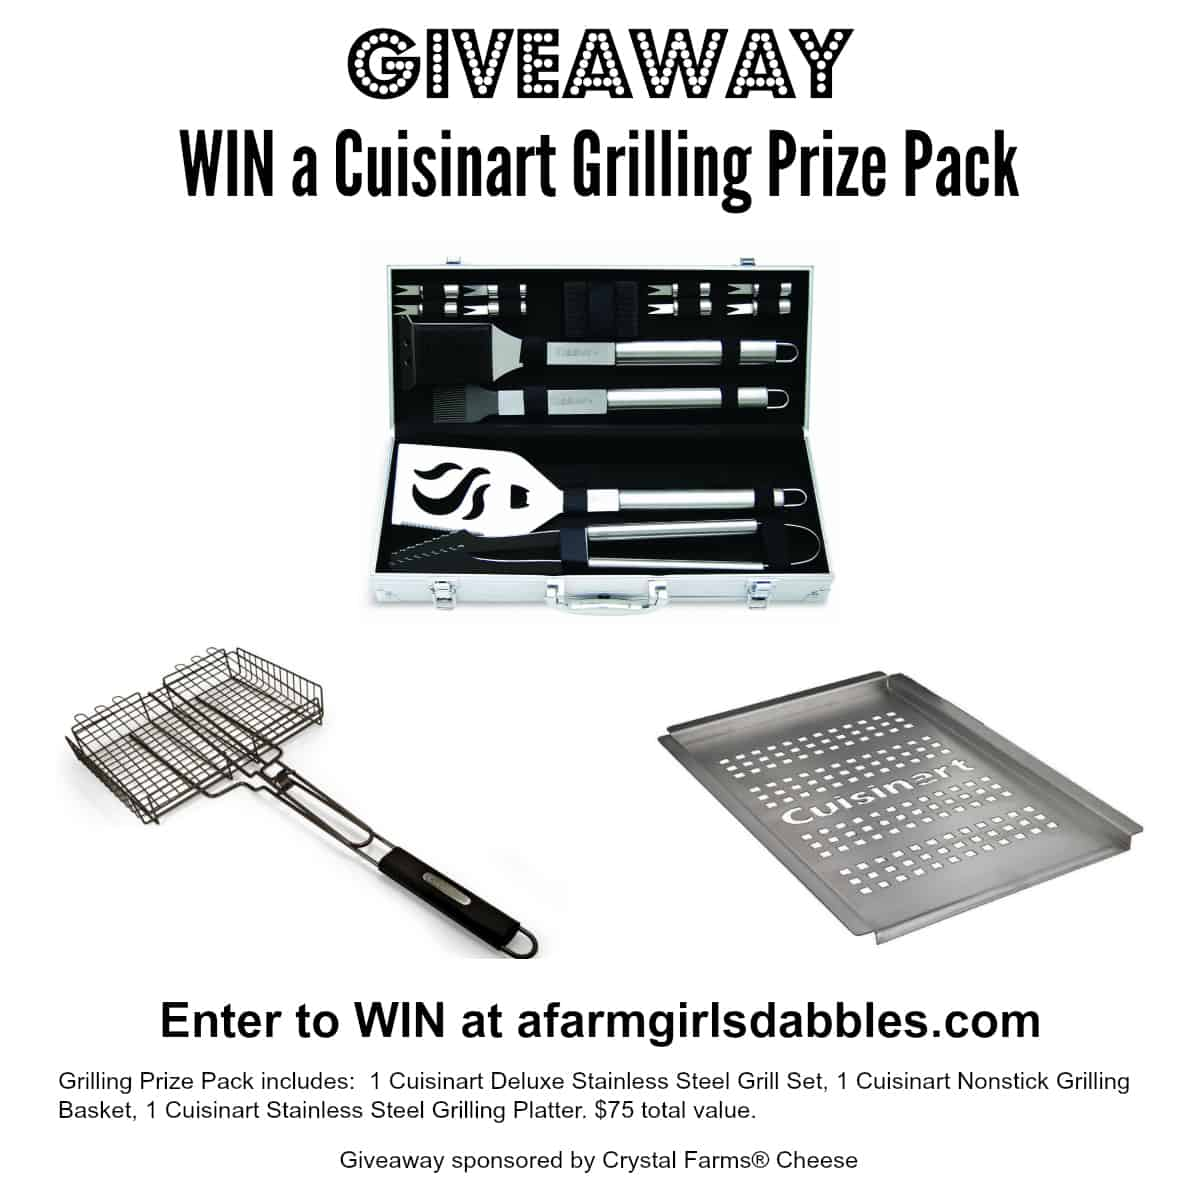 Cuisinart Grilling Prize Pack Giveaway - enter at afarmgirlsdabbles.com